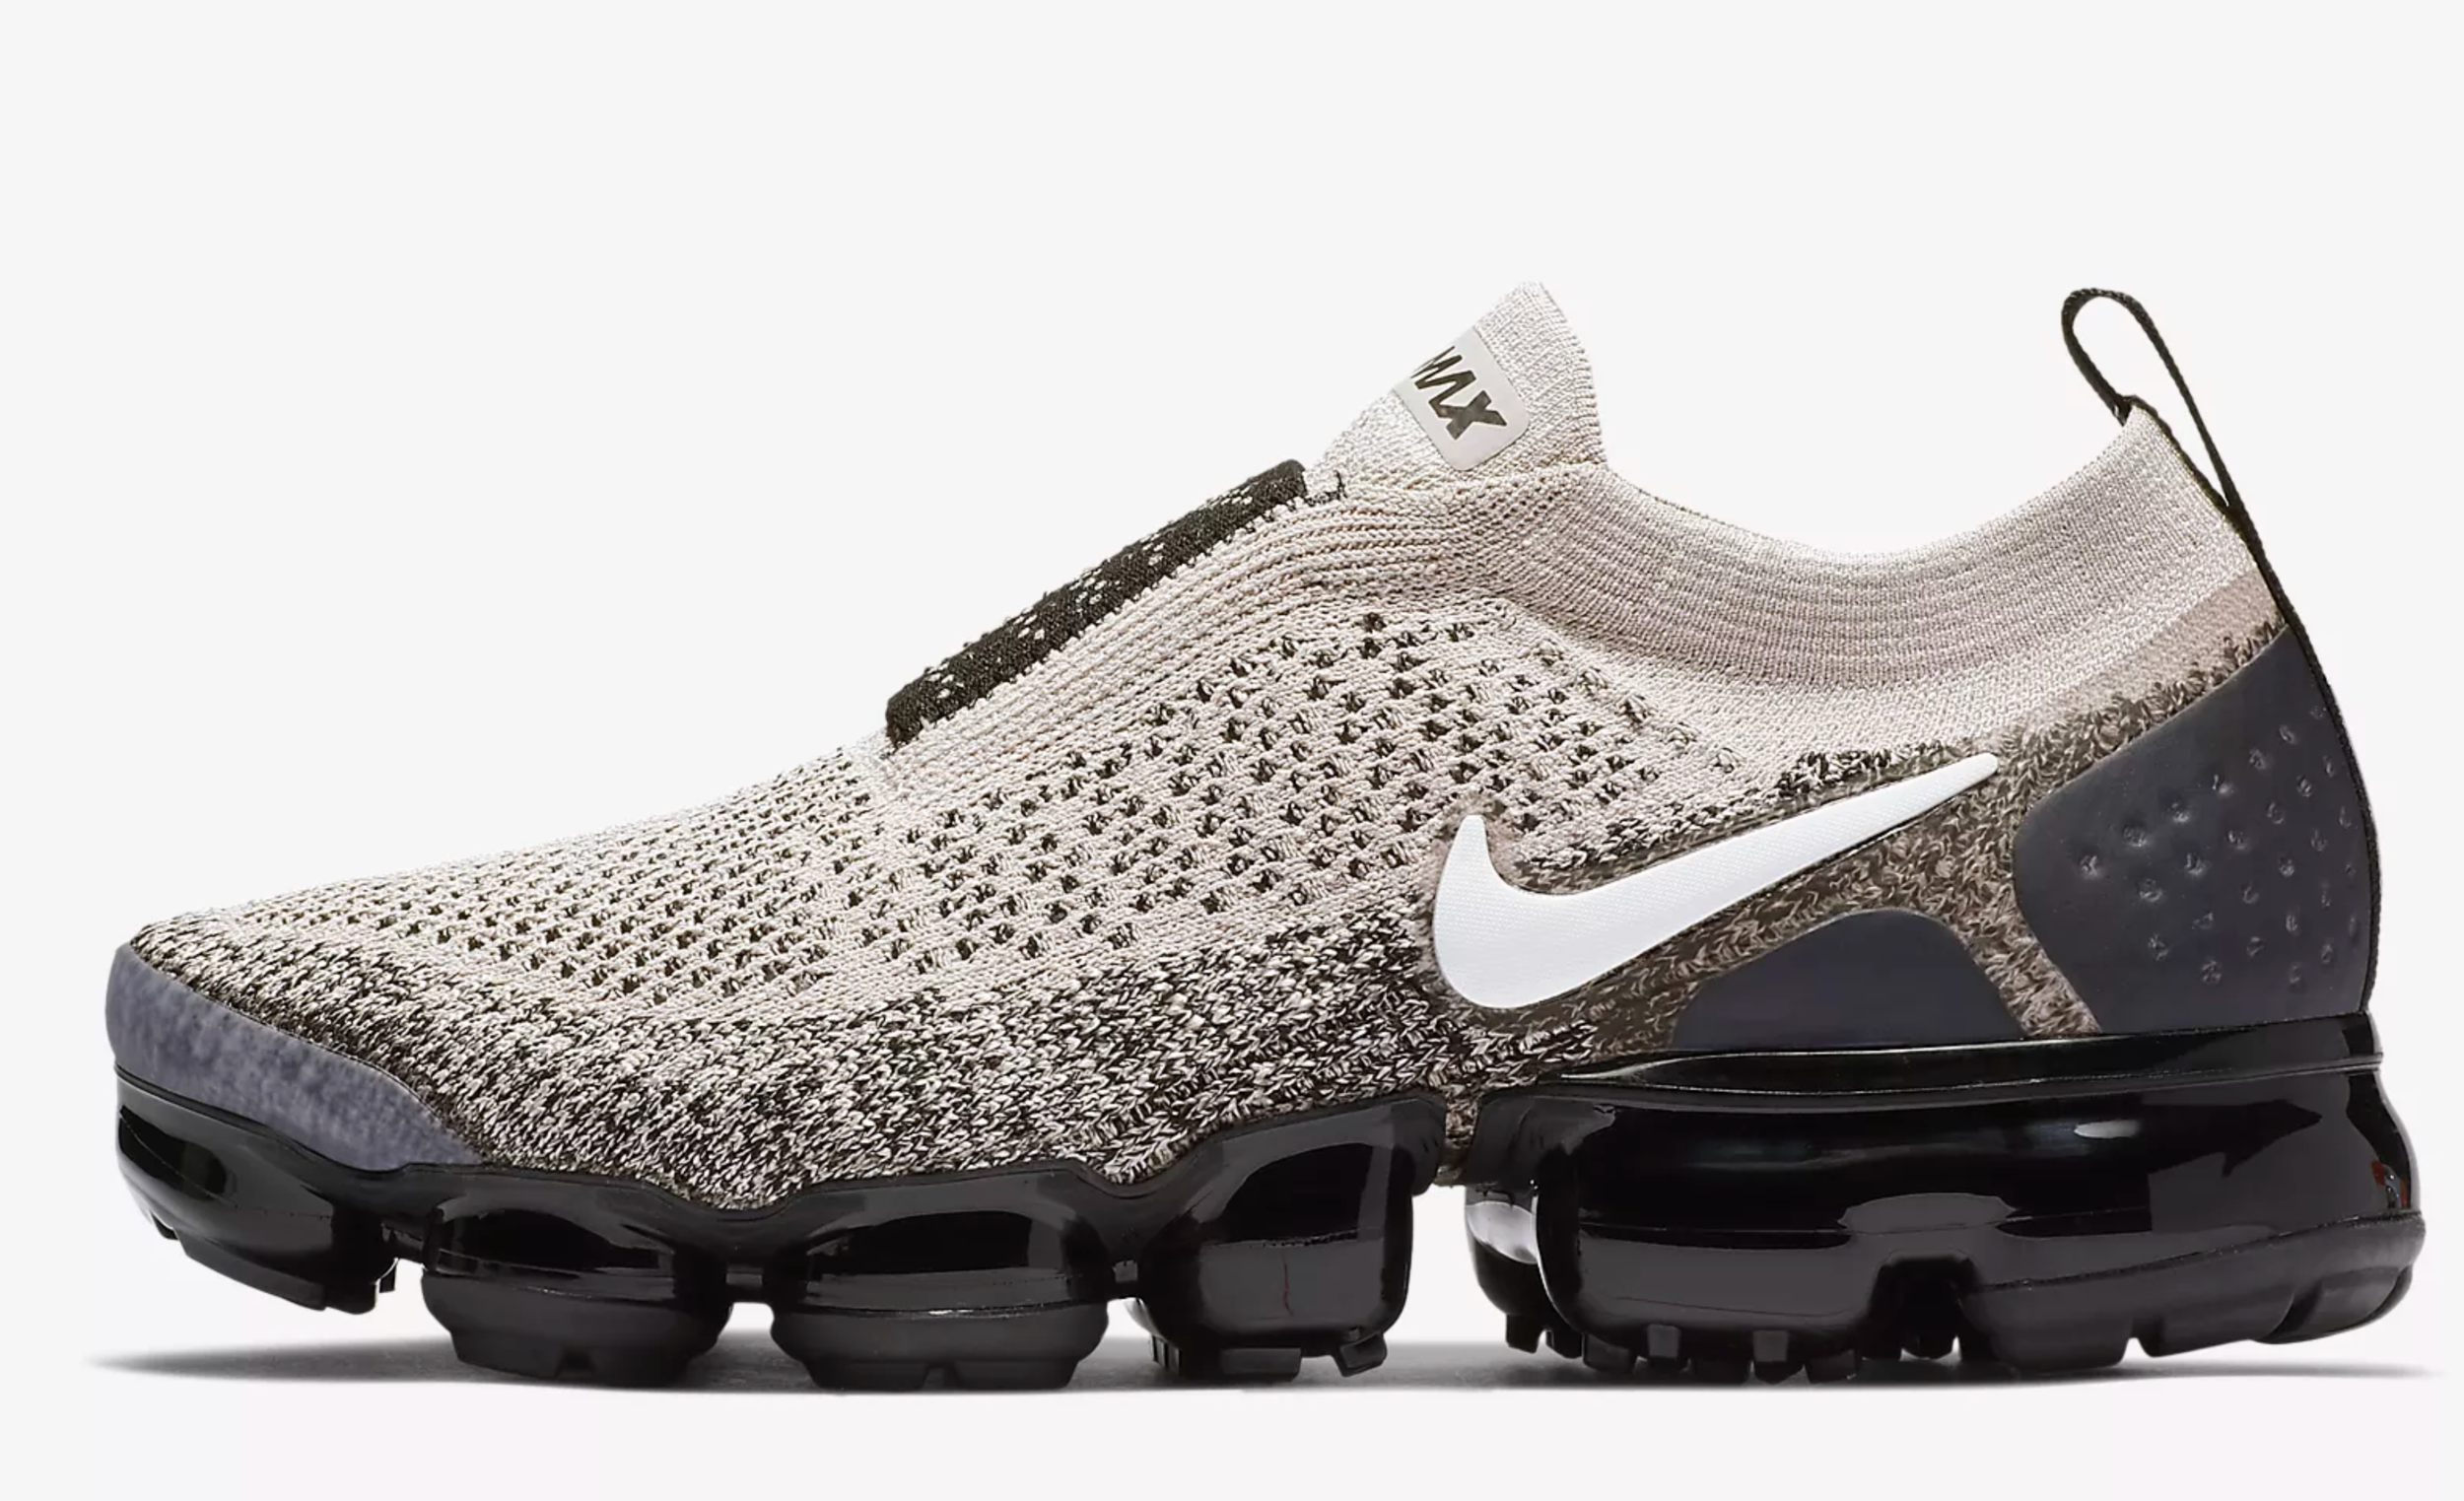 Nike Air VaporMax Flyknit Moc 2 - Gravity-defying and bouncy. Great support and easy to slip on with the no lace style. ($200)(Photo: Nike)